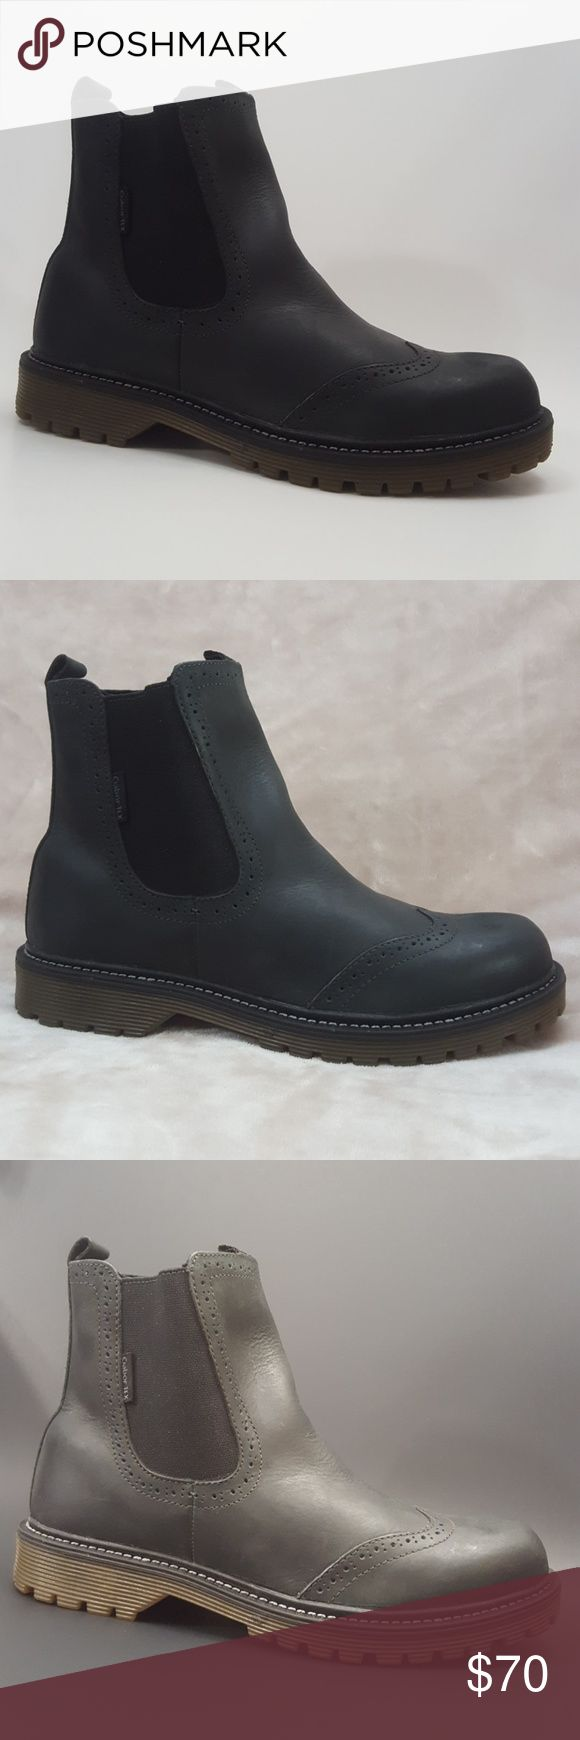 GABOR Kids Girls Boots LEATHER Size 4.5 USA GABOR KIDS BRAND  Condition : New without box Size : 4.5 USA/37 EURO Color: Black Width : Medium Material : Leather Inventory: P1 Retail Price : $120  Shipping policy  -1 or 2 business day after receive sold notification   Why shopping with vivianshoe_store  -Our product is genuine and limit quantity -We sell high quality product european brand -We ship fast -We offer great customer service  BEST OFFER AVAILABLE  Please check another item for sale…